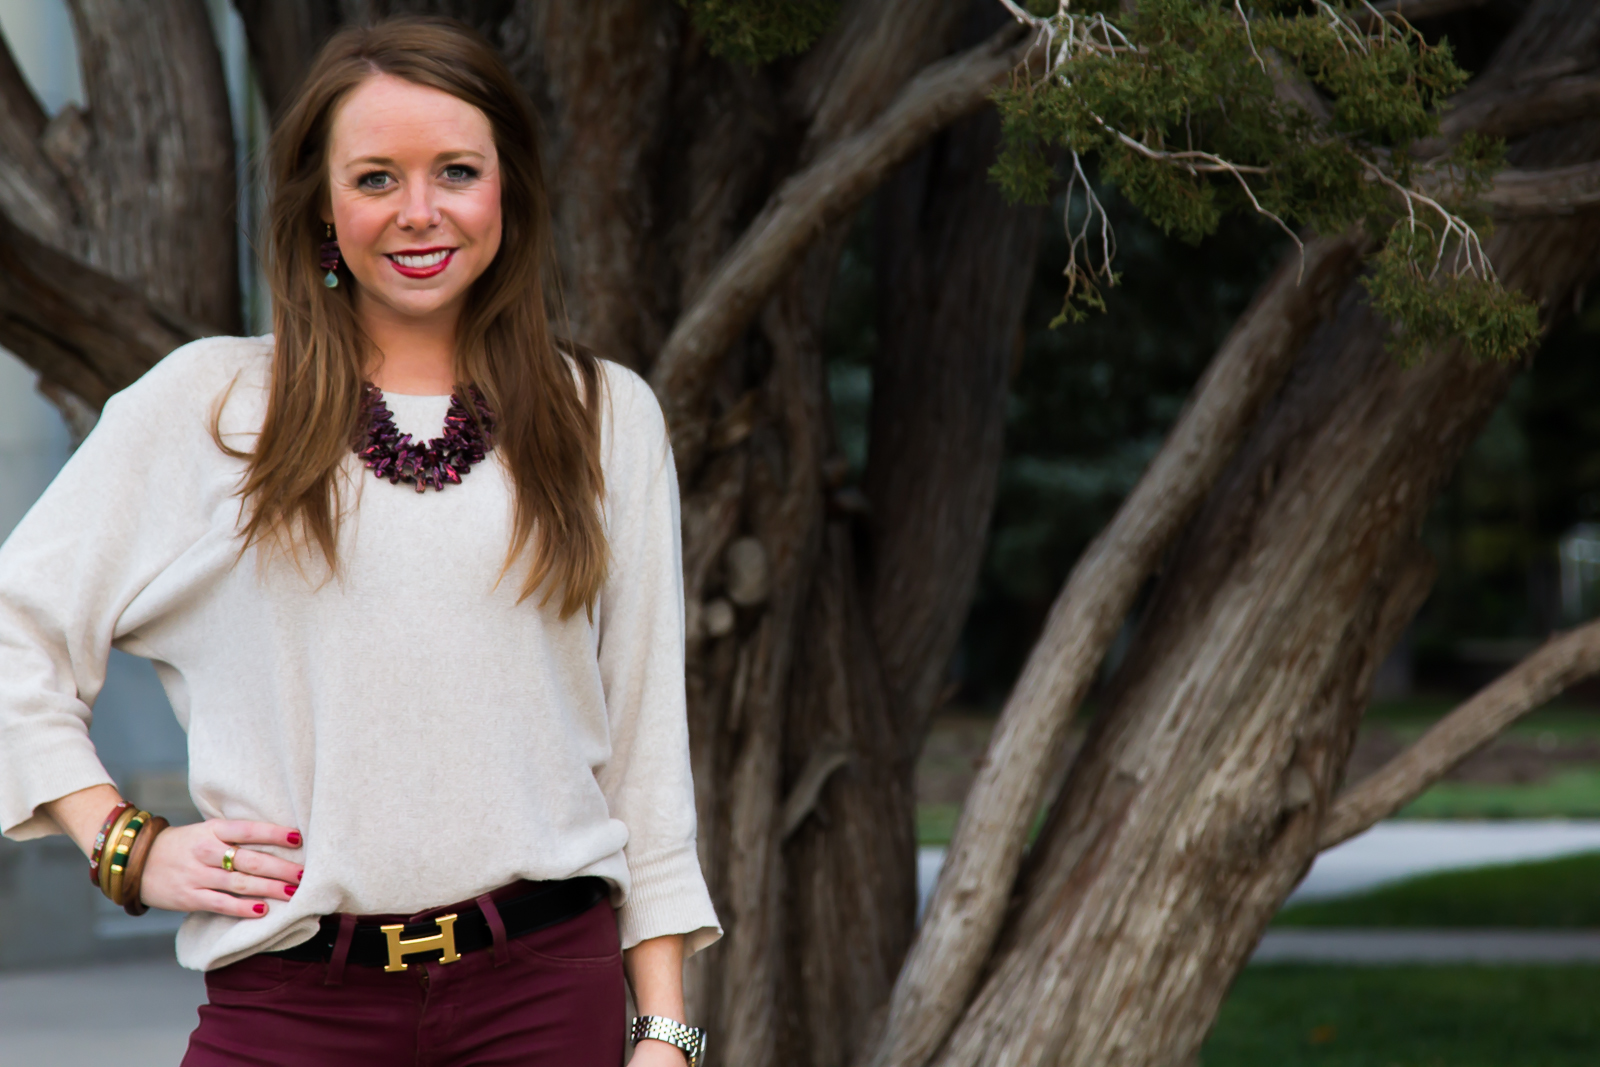 Haley Keisler | Owner and Designer of Hermosa Jewelry